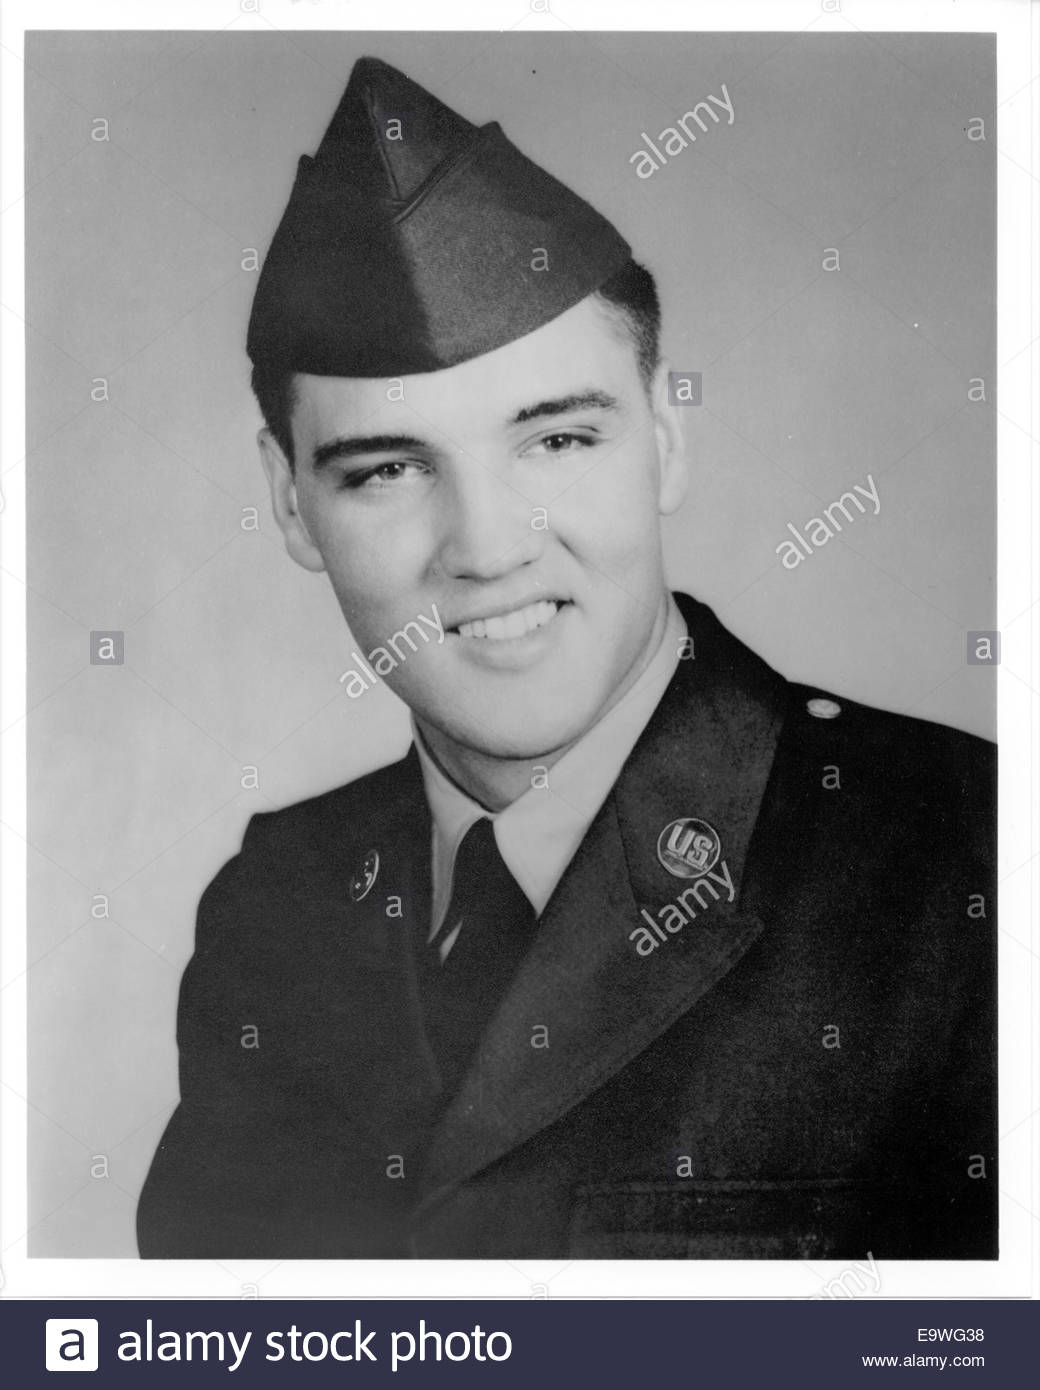 ELVIS PRESLEY IN THE ARMY, circa 1958. Courtesy Granamour Weems Collection.  Editorial use only. - Stock Image